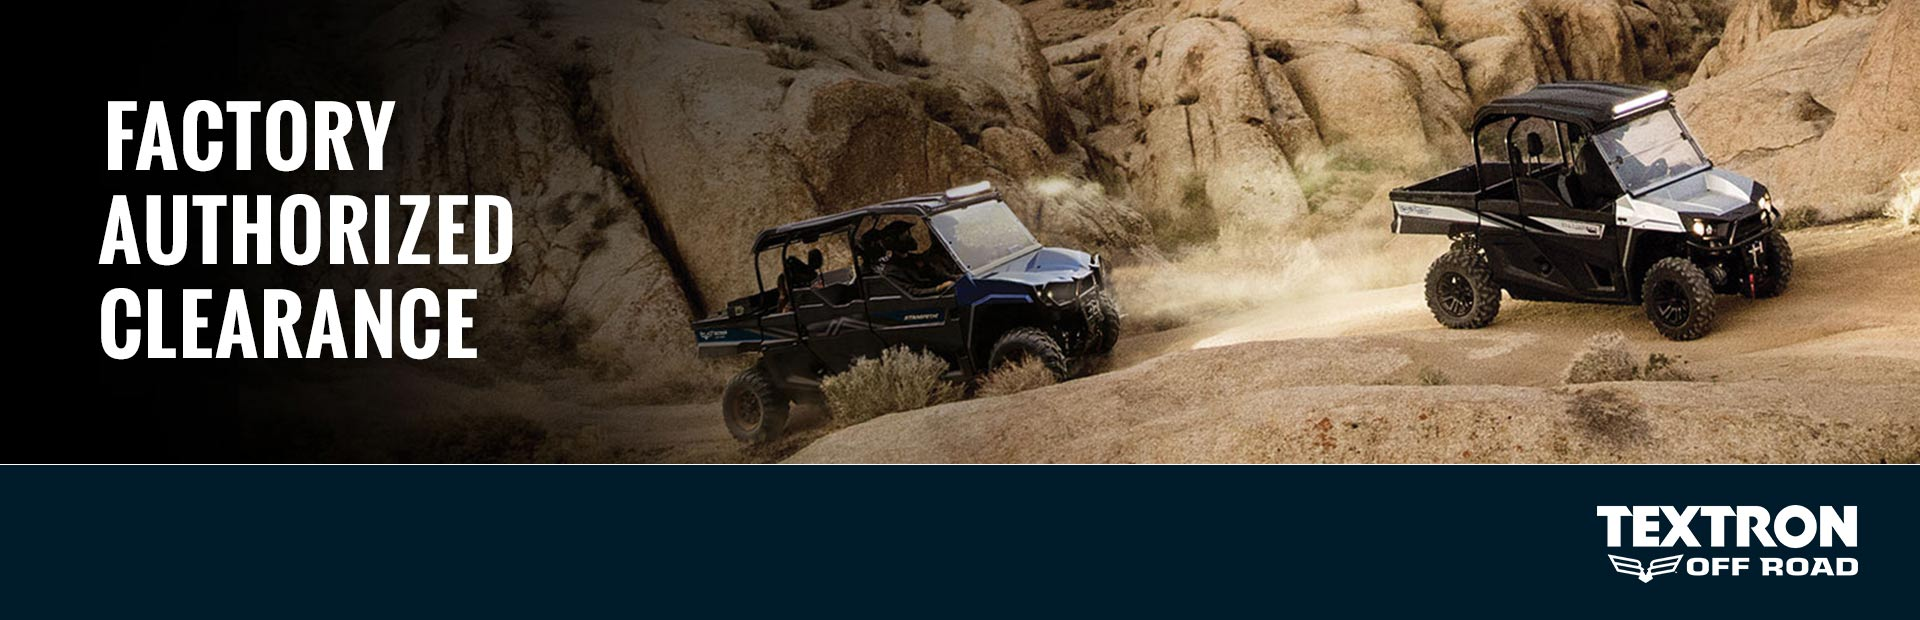 Textron Off Road: Factory Authorized Clearance